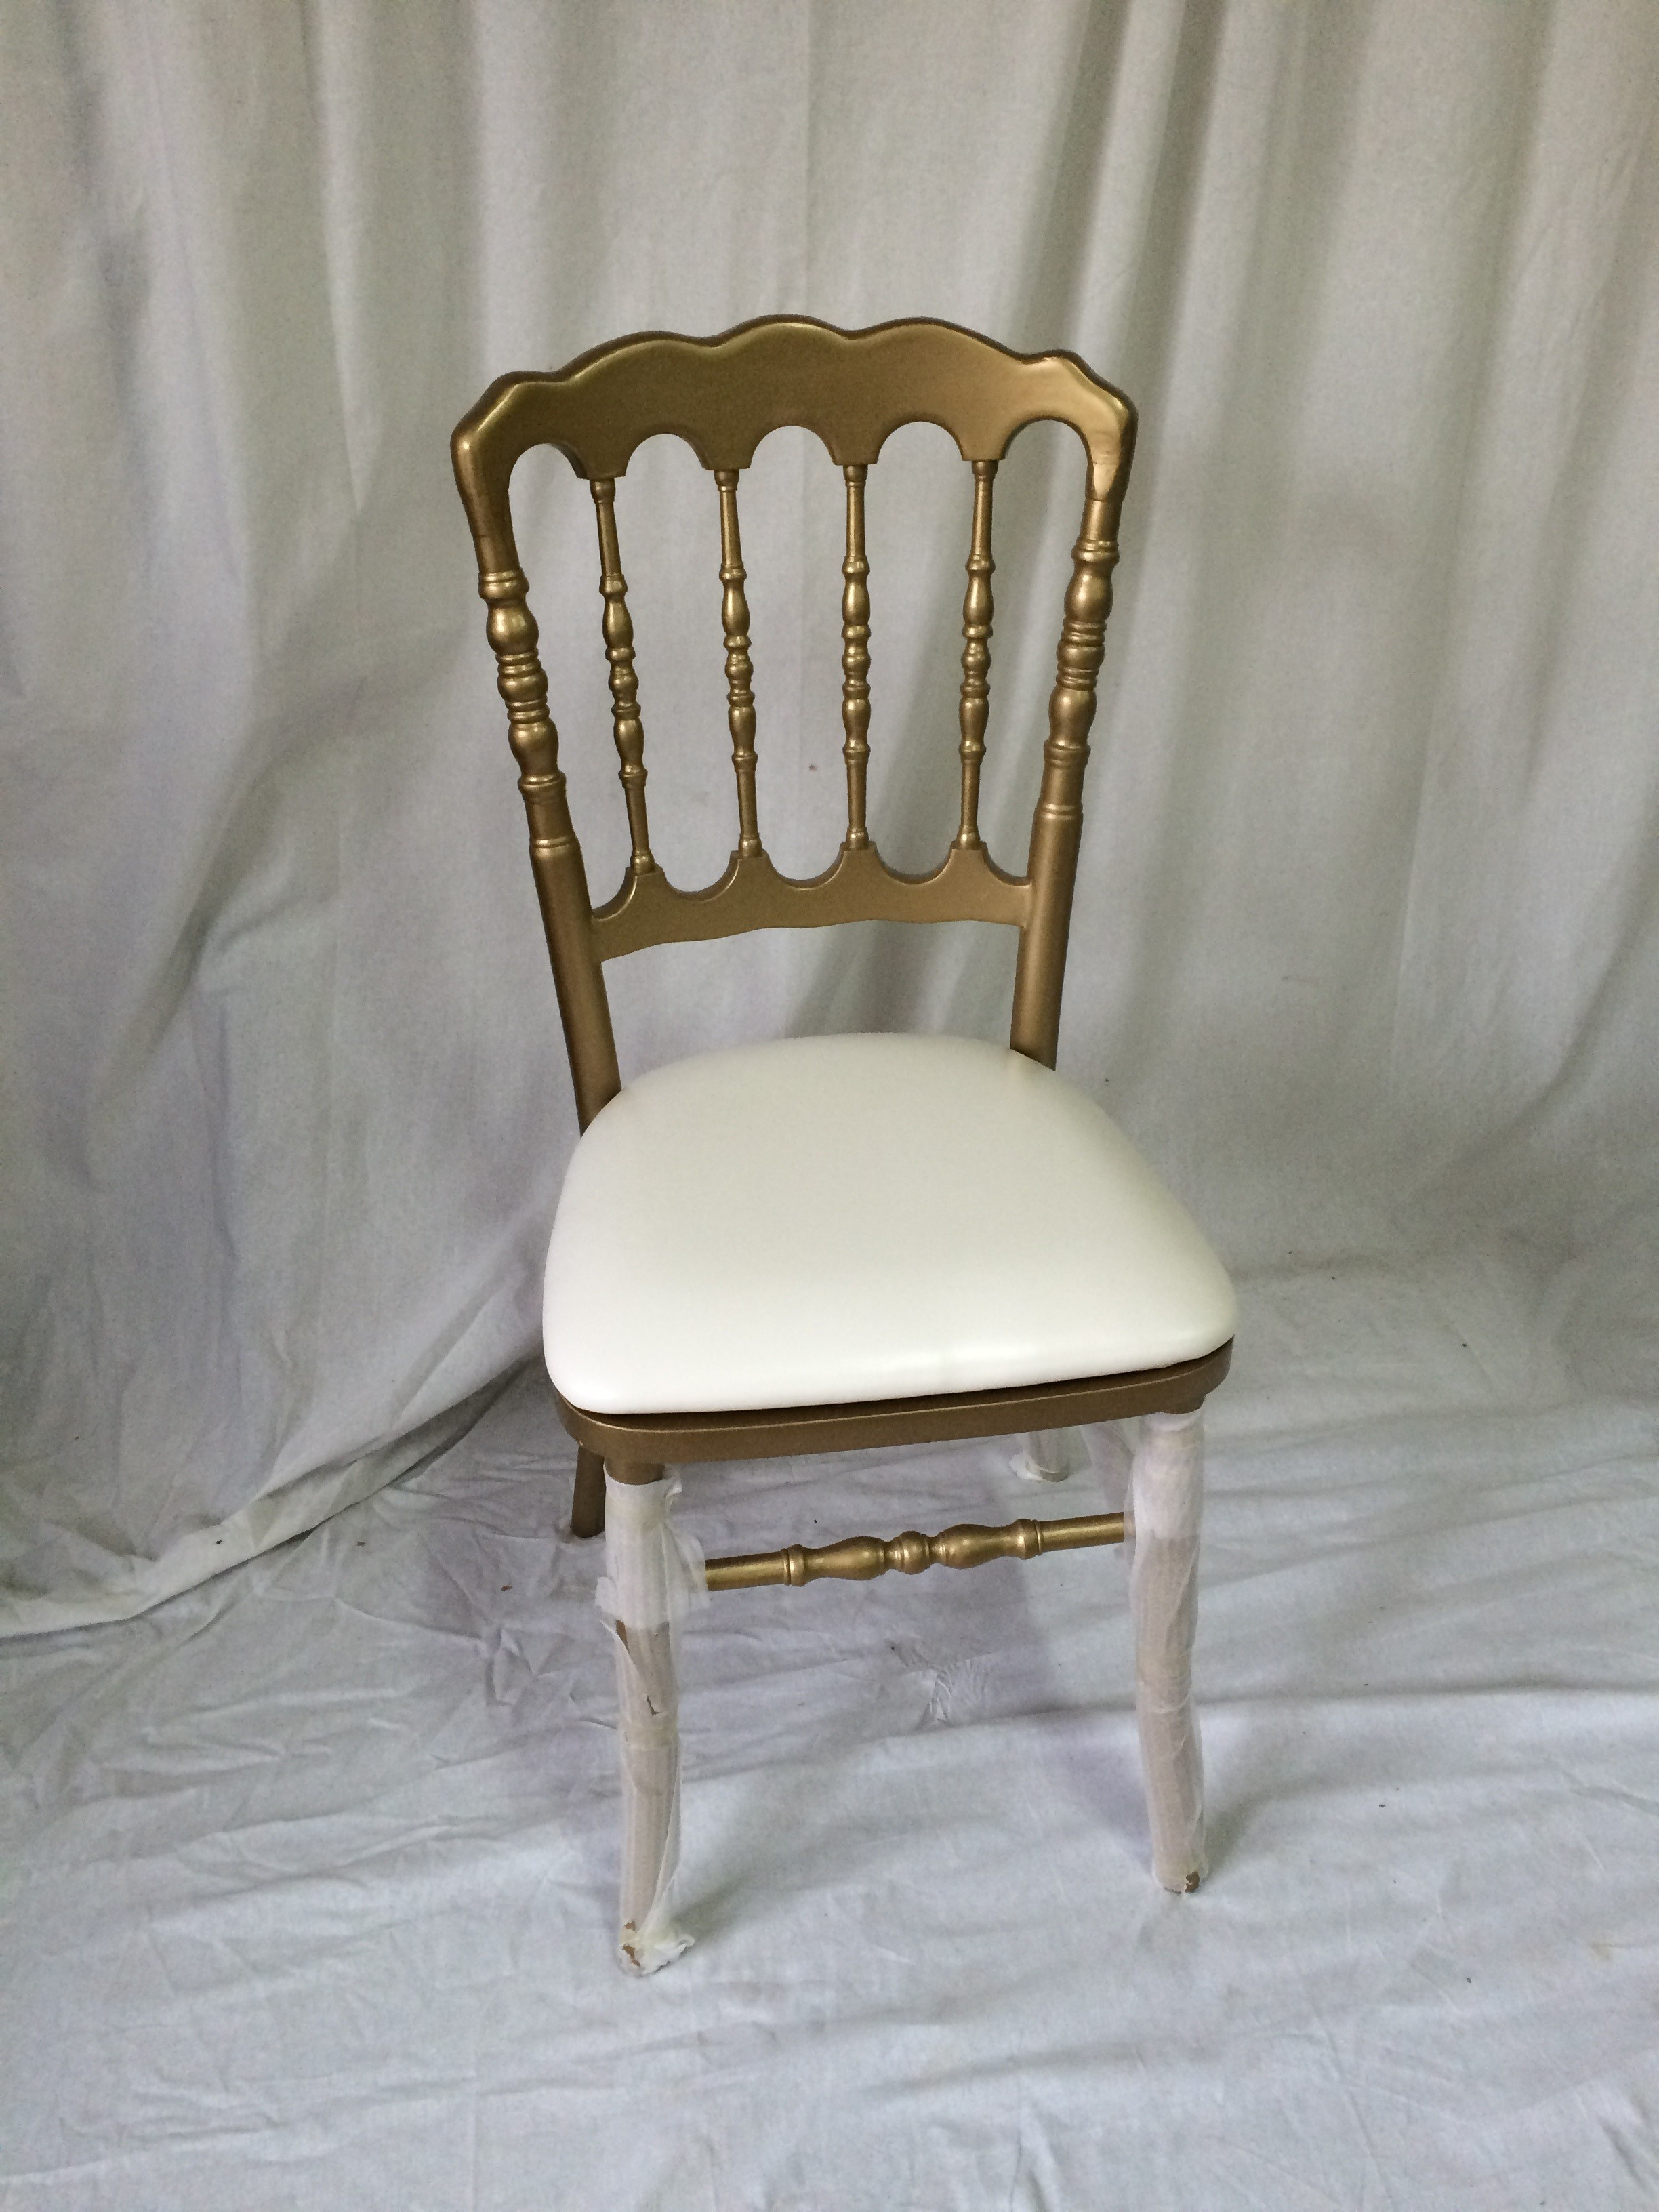 Chaises Baroques Pas Cher Chaise Baroque Blanche Pas Cher Chaise Baroque Moderne